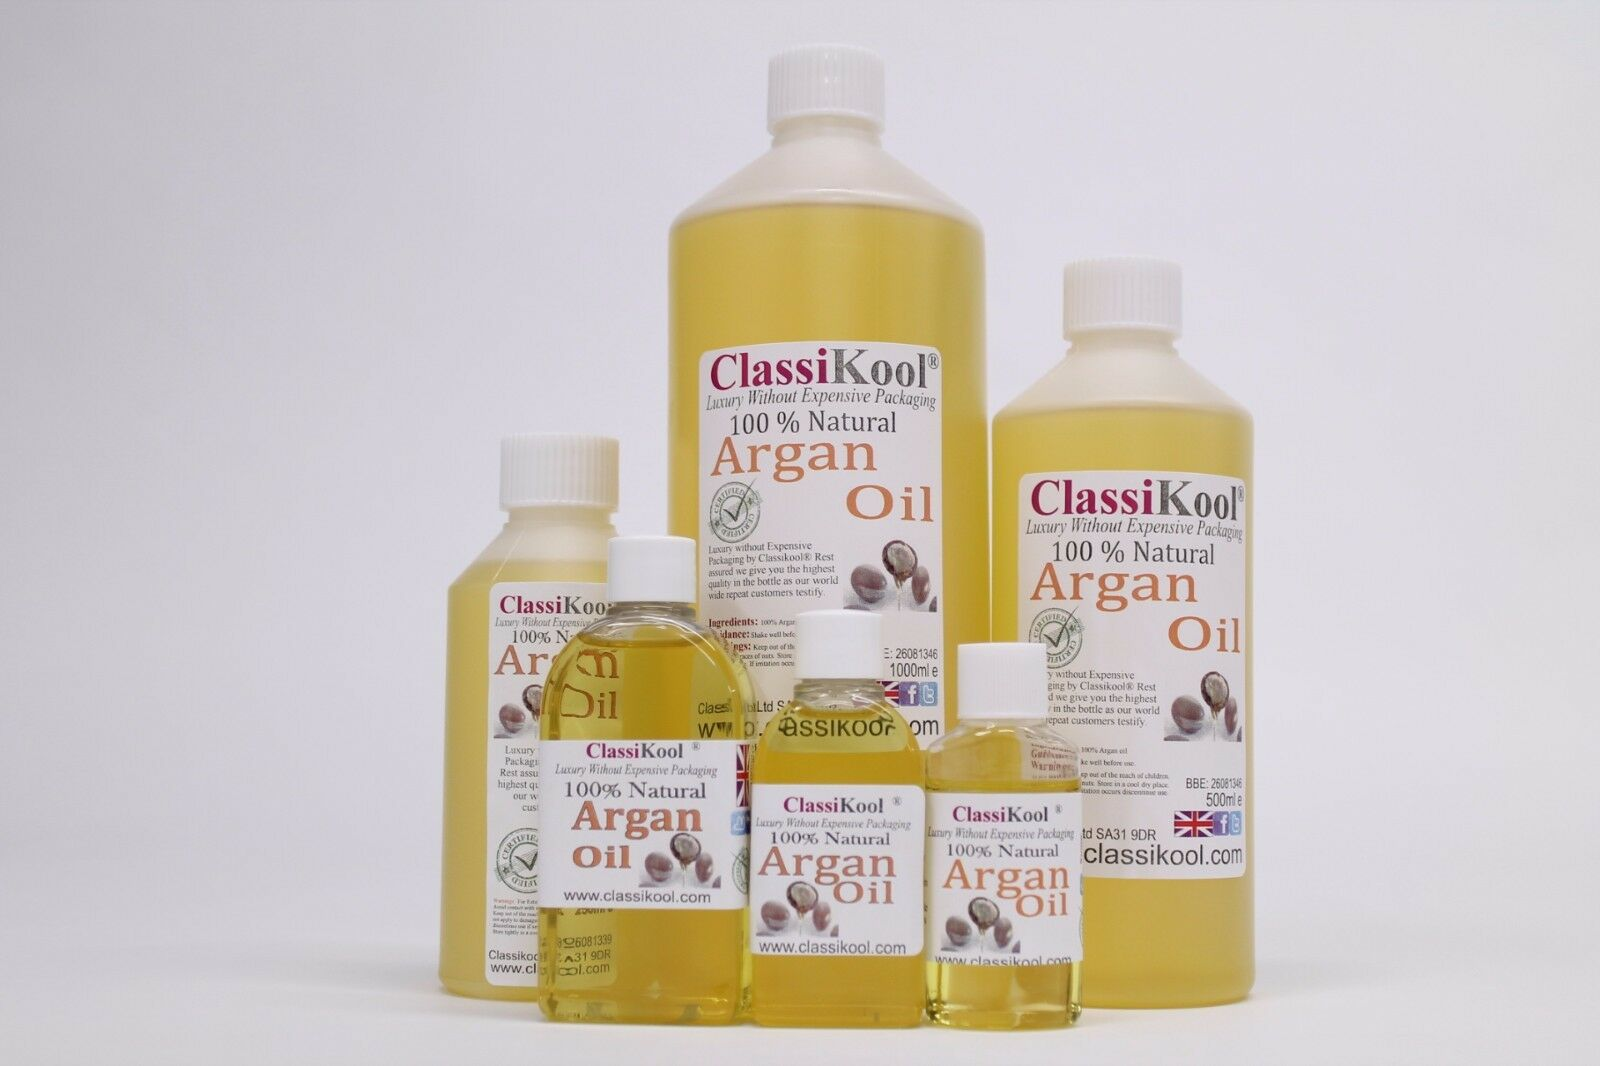 Classikool 100% Pure Natural Moroccan Argan Oil for Beauty Skin & Hair Care